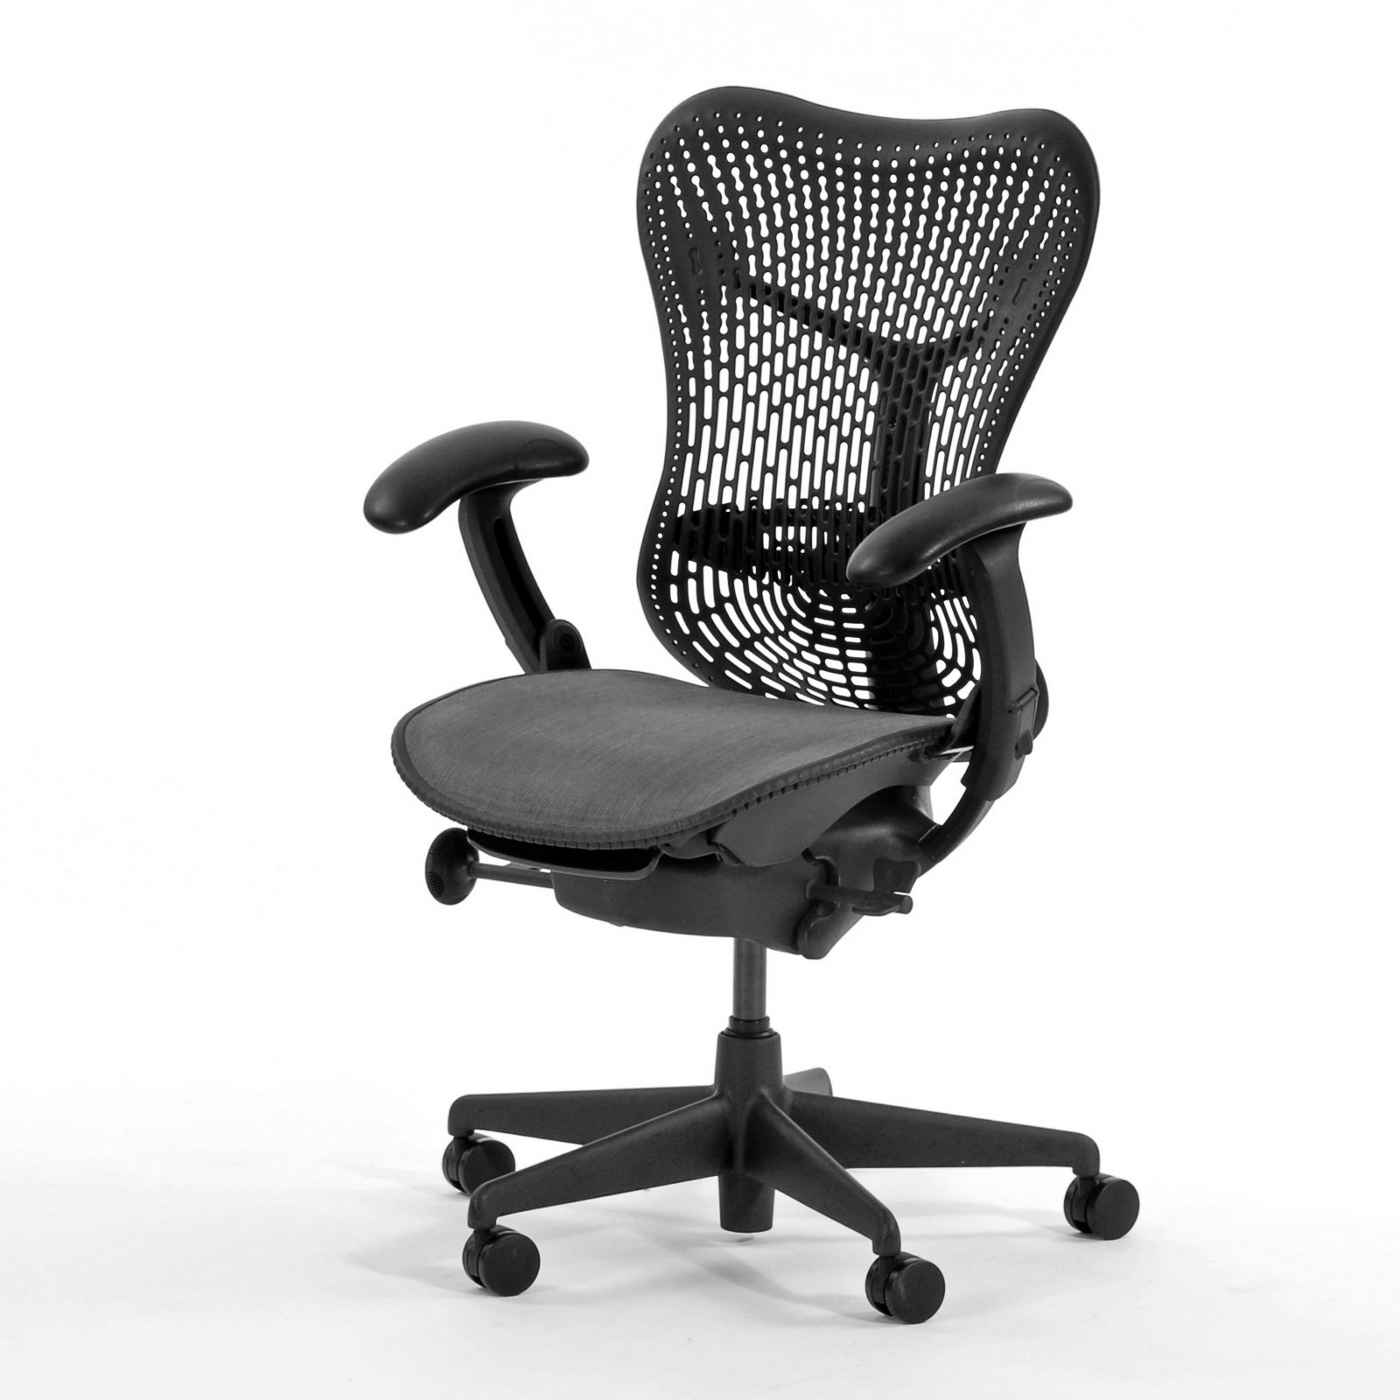 ergonomic office chairs full size of office furniture:elegant ergonomic desk chair pertaining to office JEYGLOH